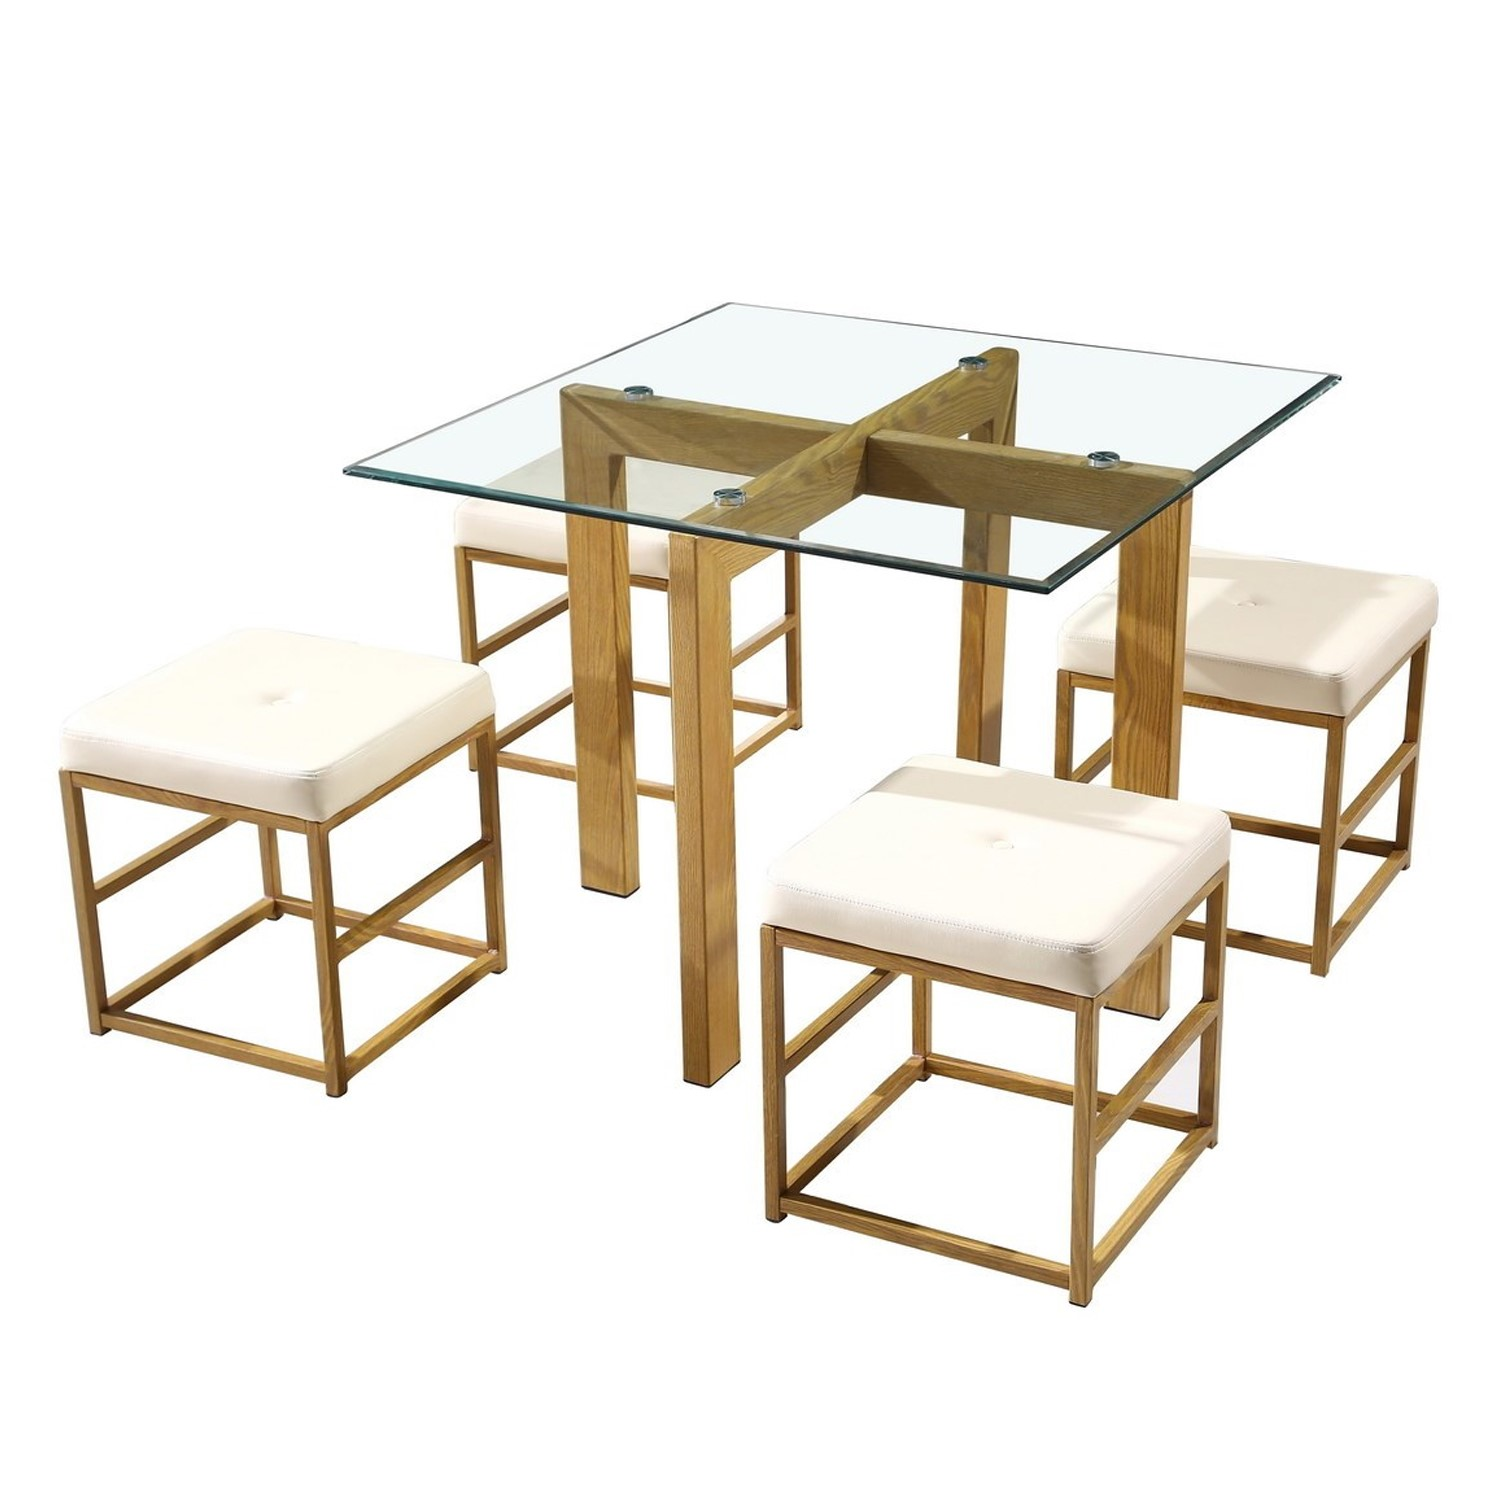 Outstanding Lpd Glass Cube Dining Set With Cream Faux Leather Seat Pads Creativecarmelina Interior Chair Design Creativecarmelinacom